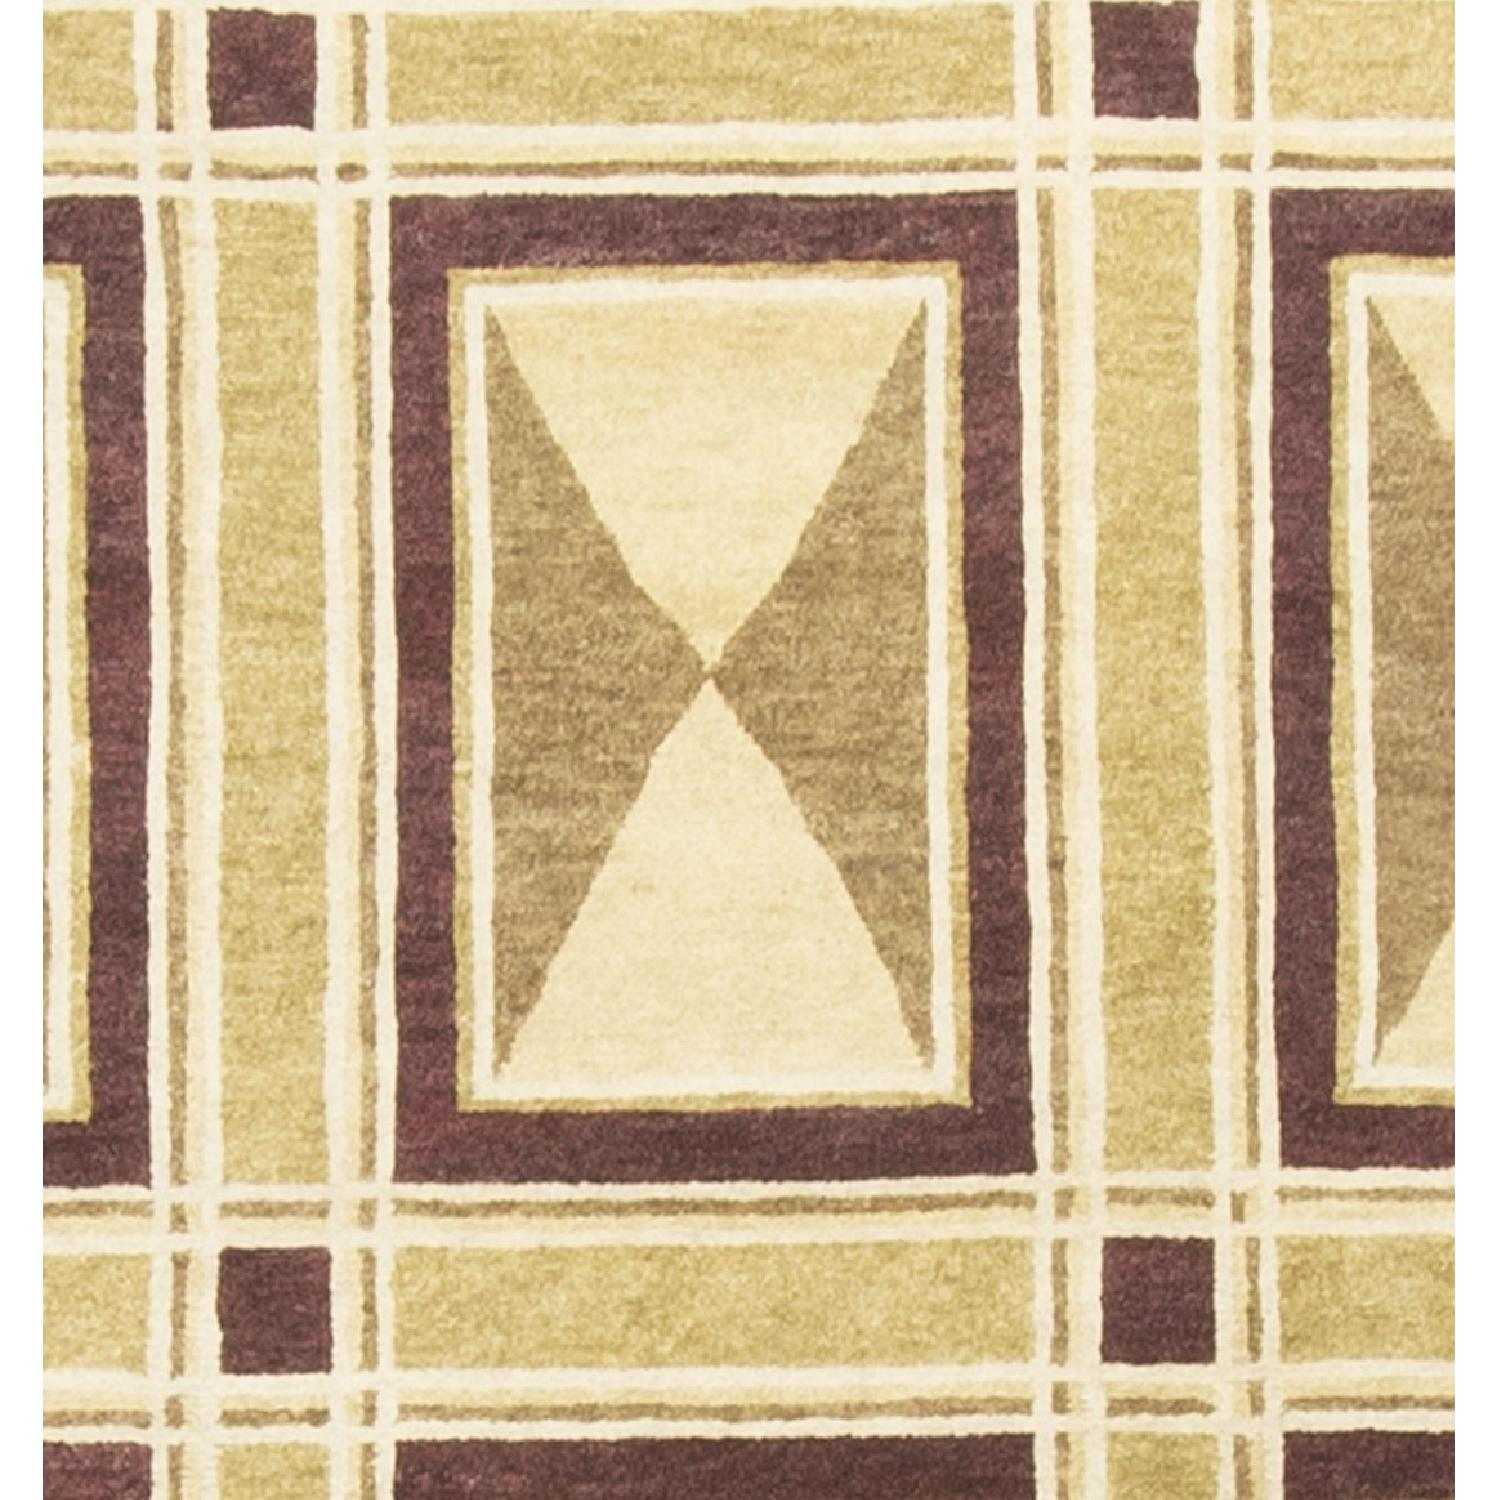 Modern Contemporary Hand Knotted Wool Rug in Beige/Red - image-2